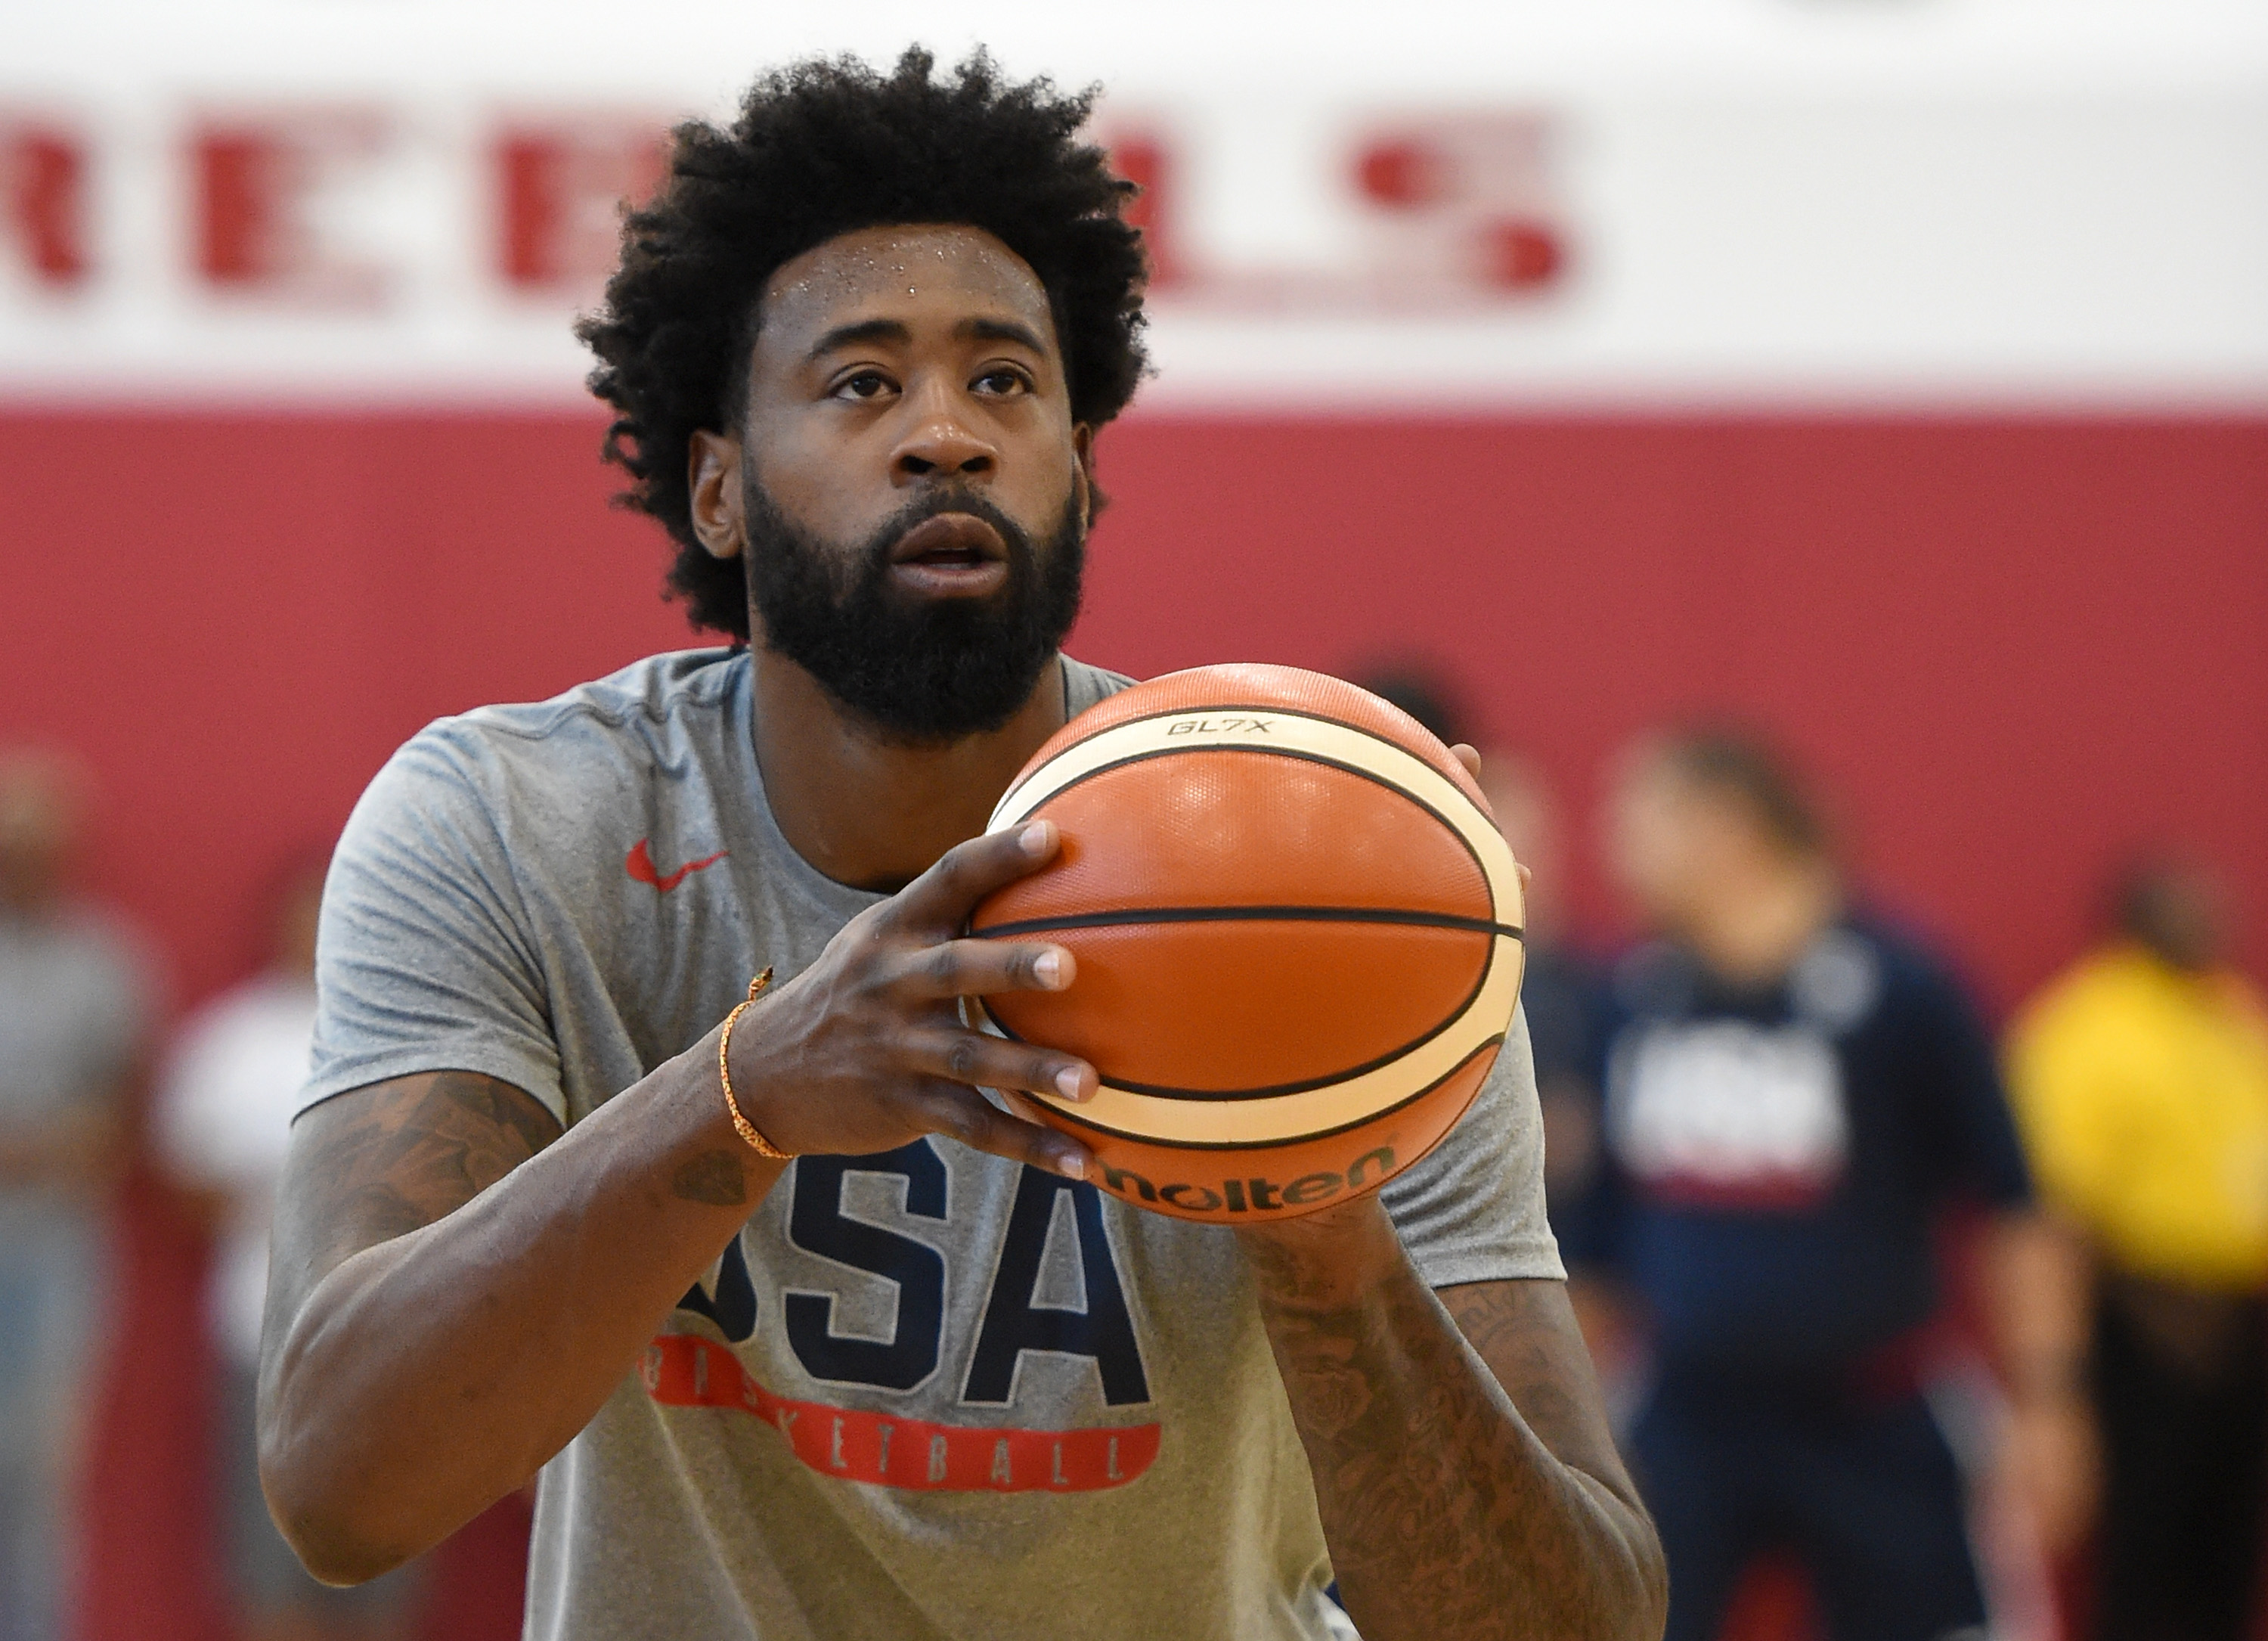 DeAndre Jordan suddenly can't miss free throws. How did that happen?